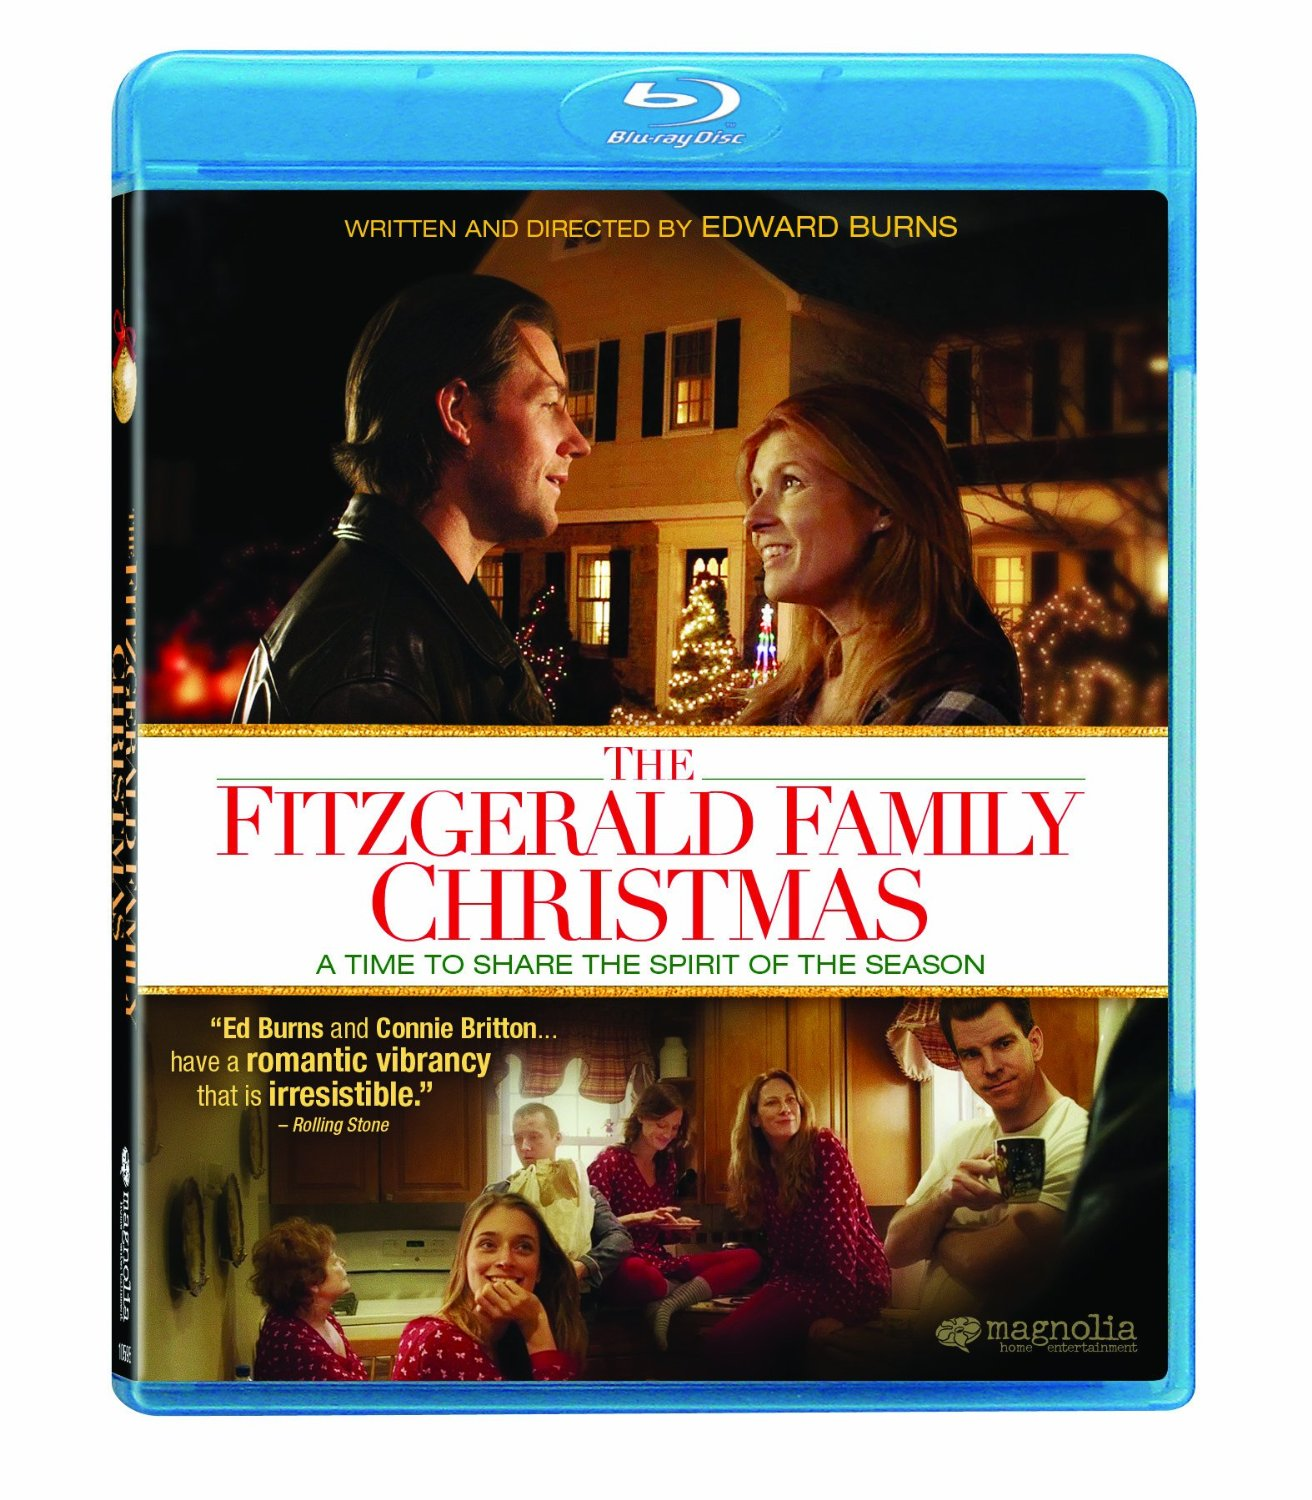 heartfelt and humorous the fitzgerald family christmas arrives on blu ray and dvd november 5 from magnolia home entertainment - Fitzgerald Christmas